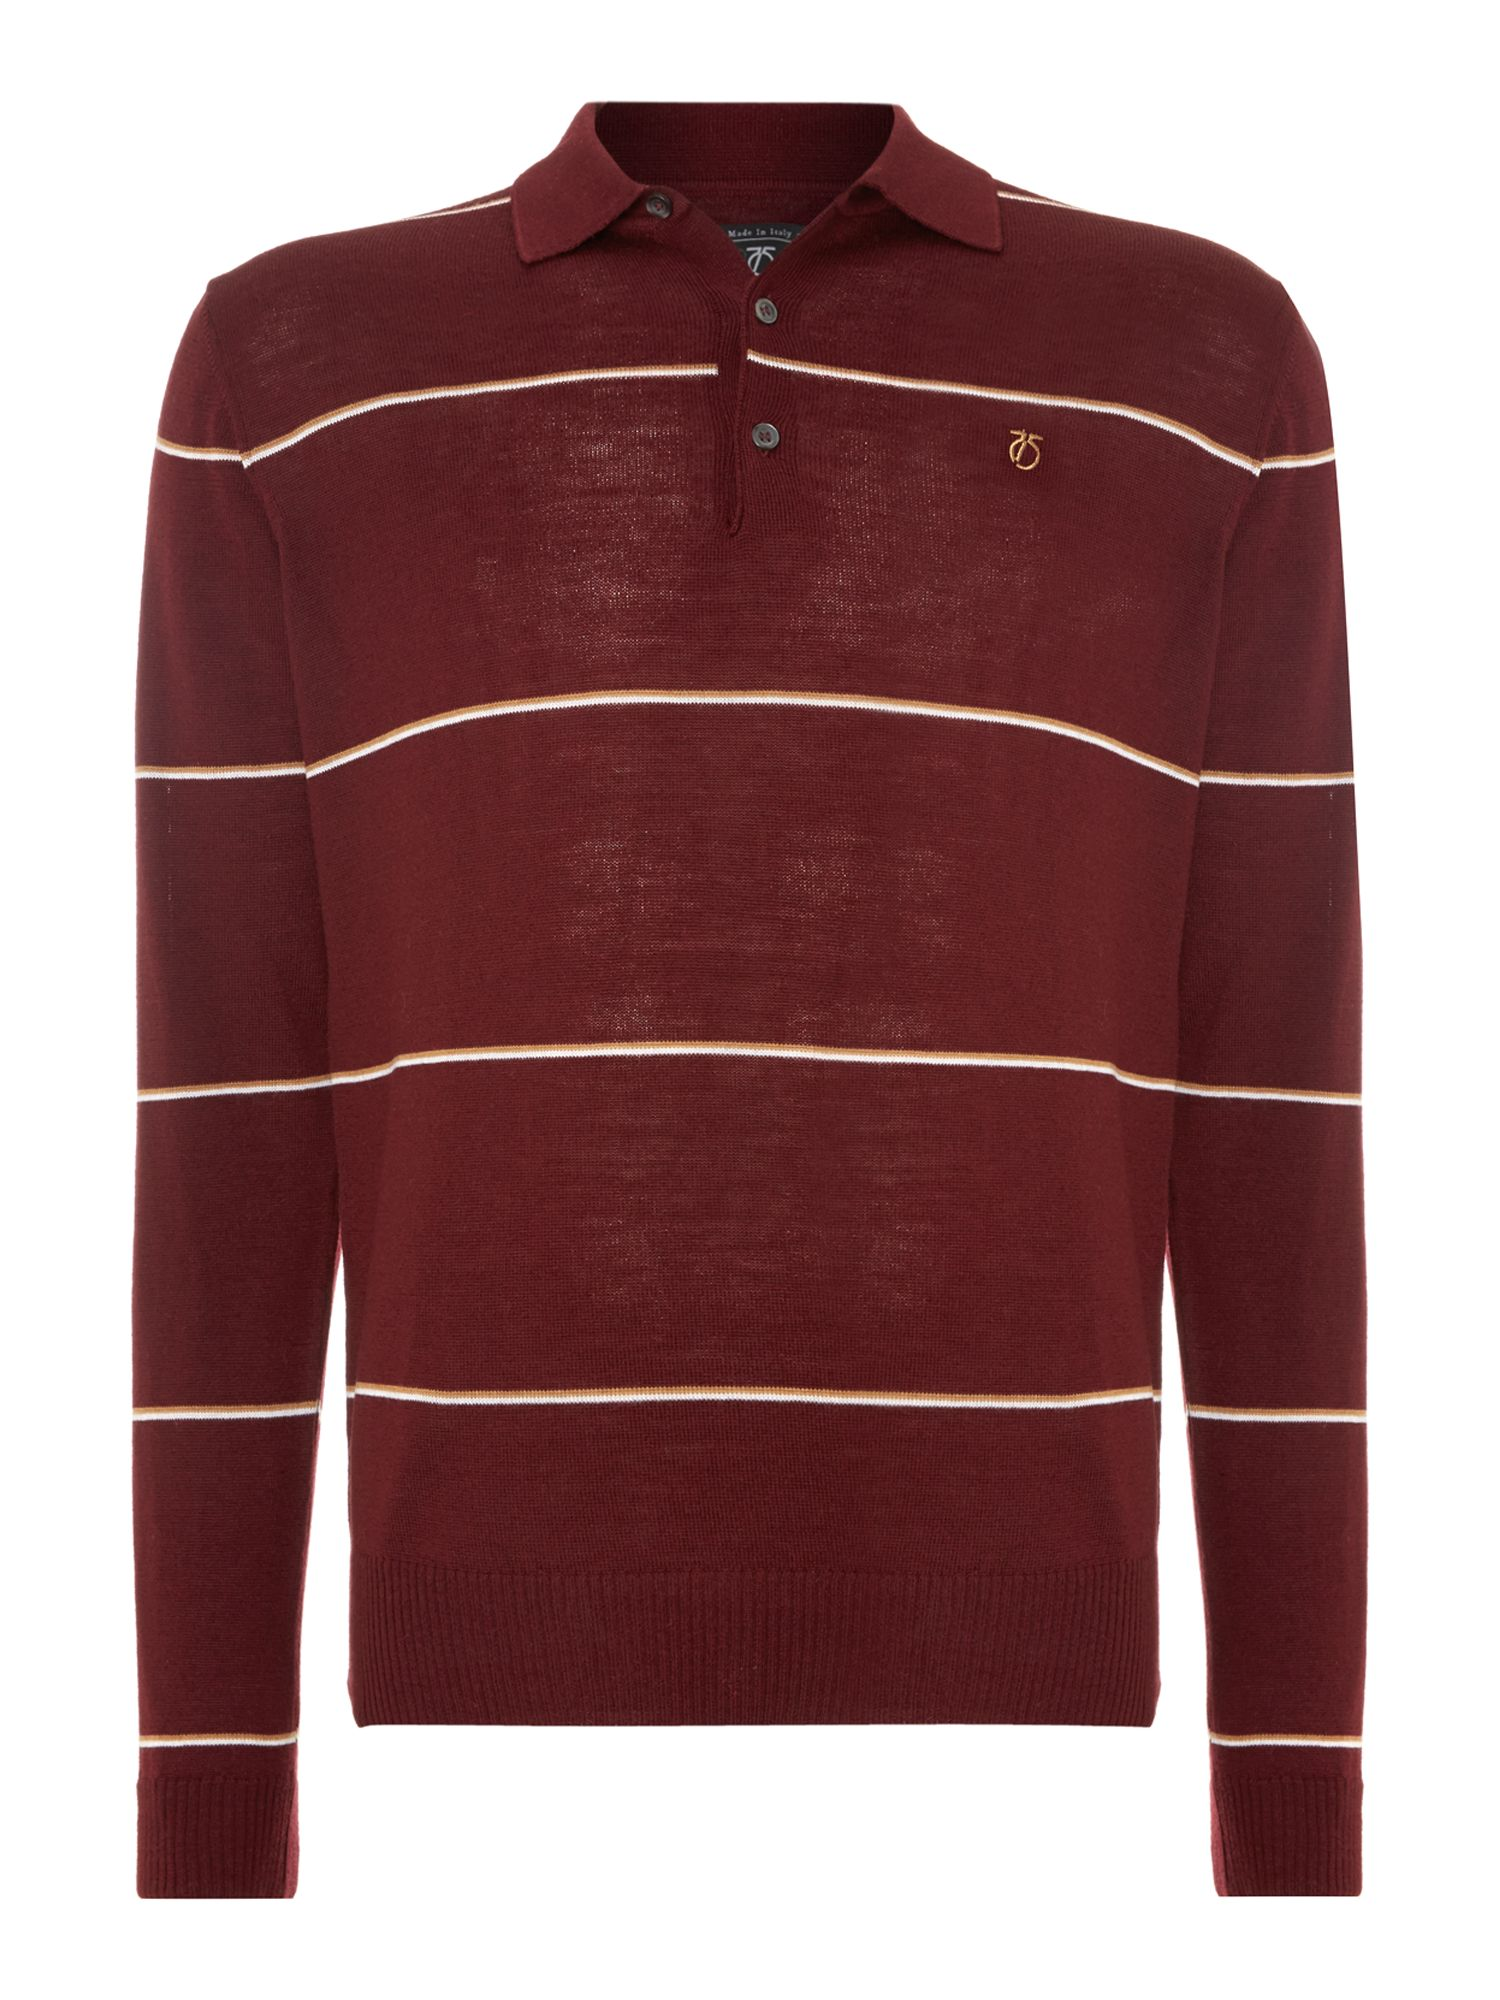 1975 merino hooped knitted polo shirt